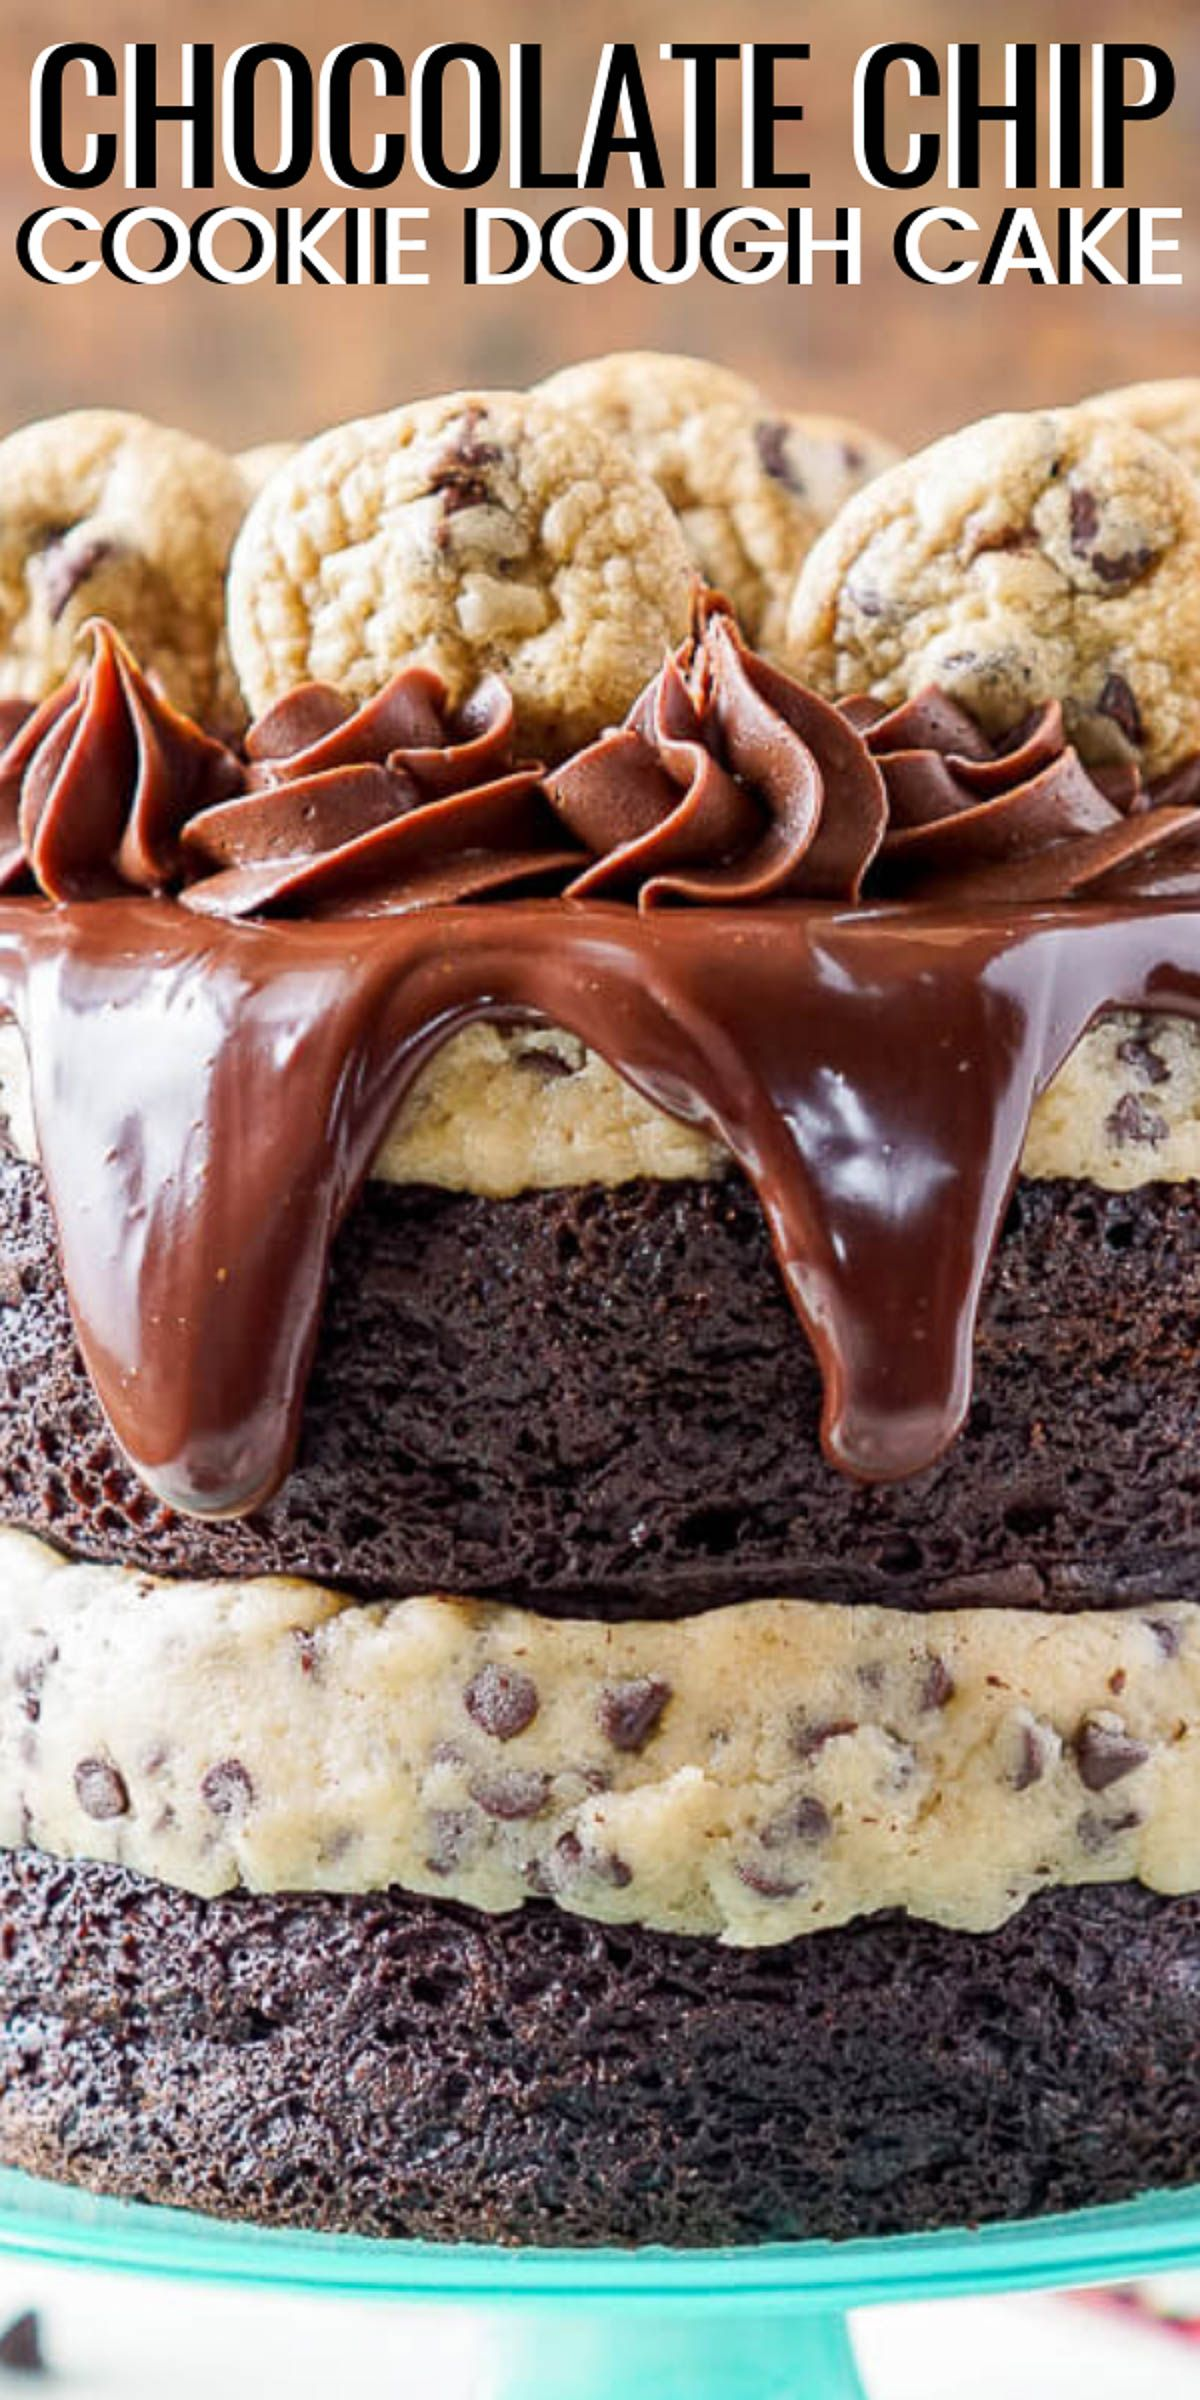 This Chocolate Chip Cookie Dough Cake is made with two layers of delicious chocolate cake, and two layers of edible cookie dough then topped with ganache, frosting, and mini chocolate chip cookies! #chocolatechipcookiedough